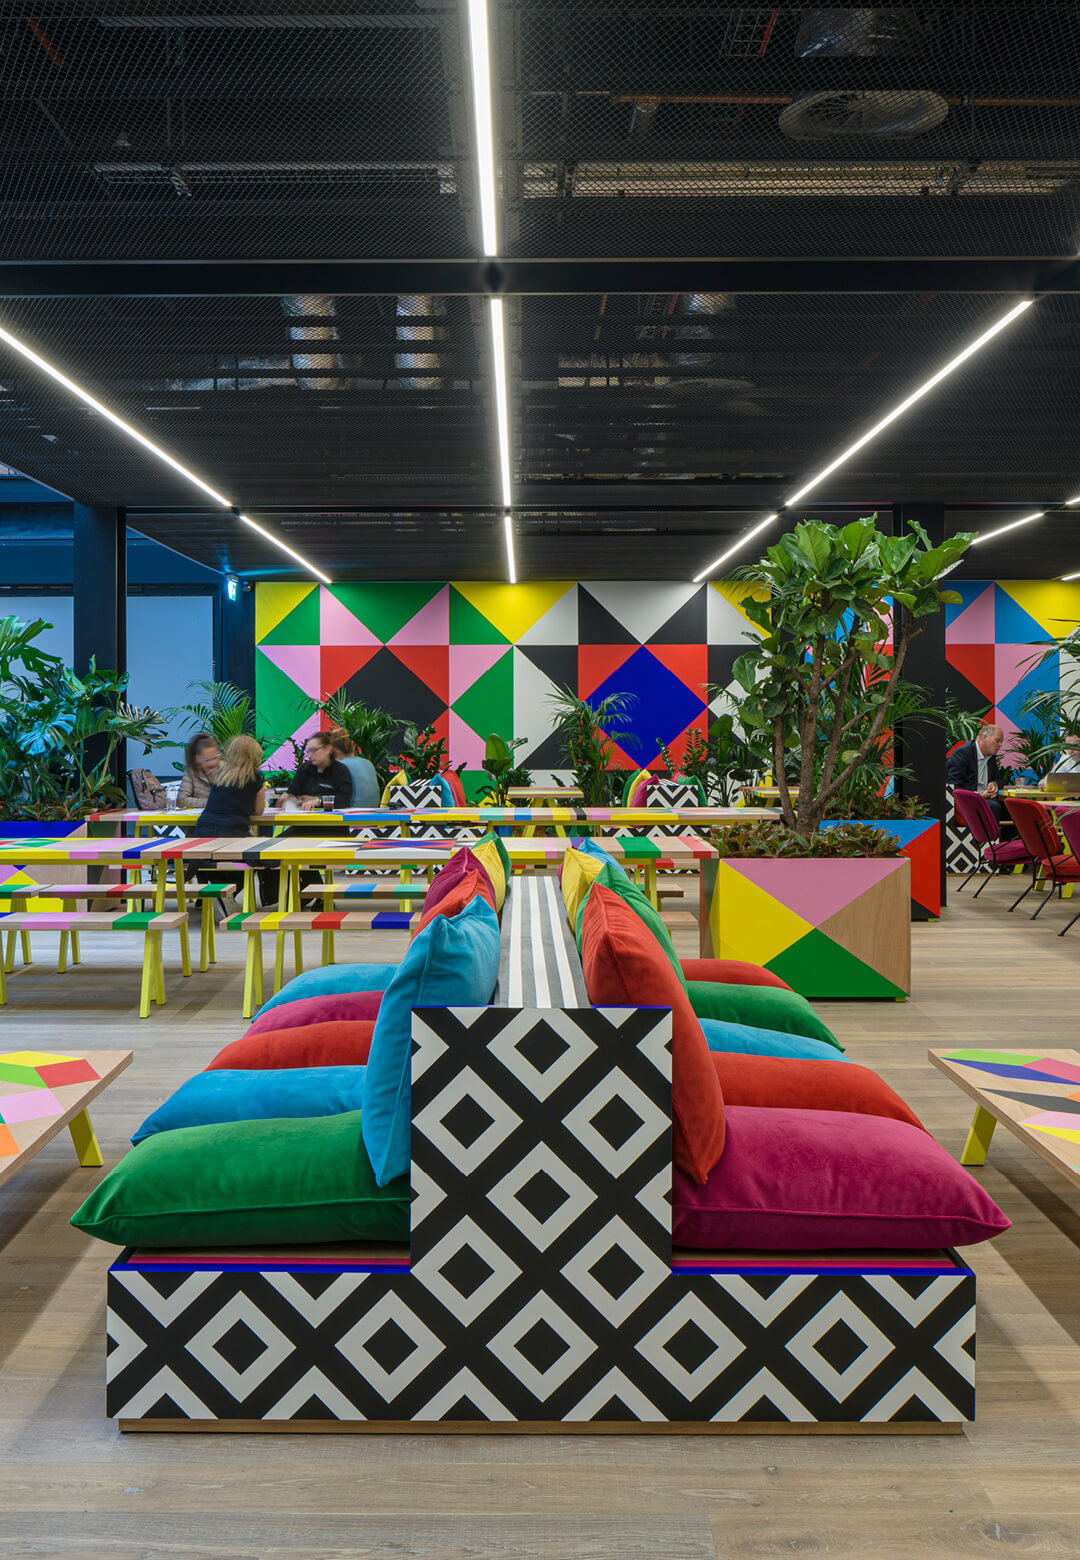 Atoll by Morag Myerscough at Broadgate, London | Atoll | Morag Myerscough | STIRworld